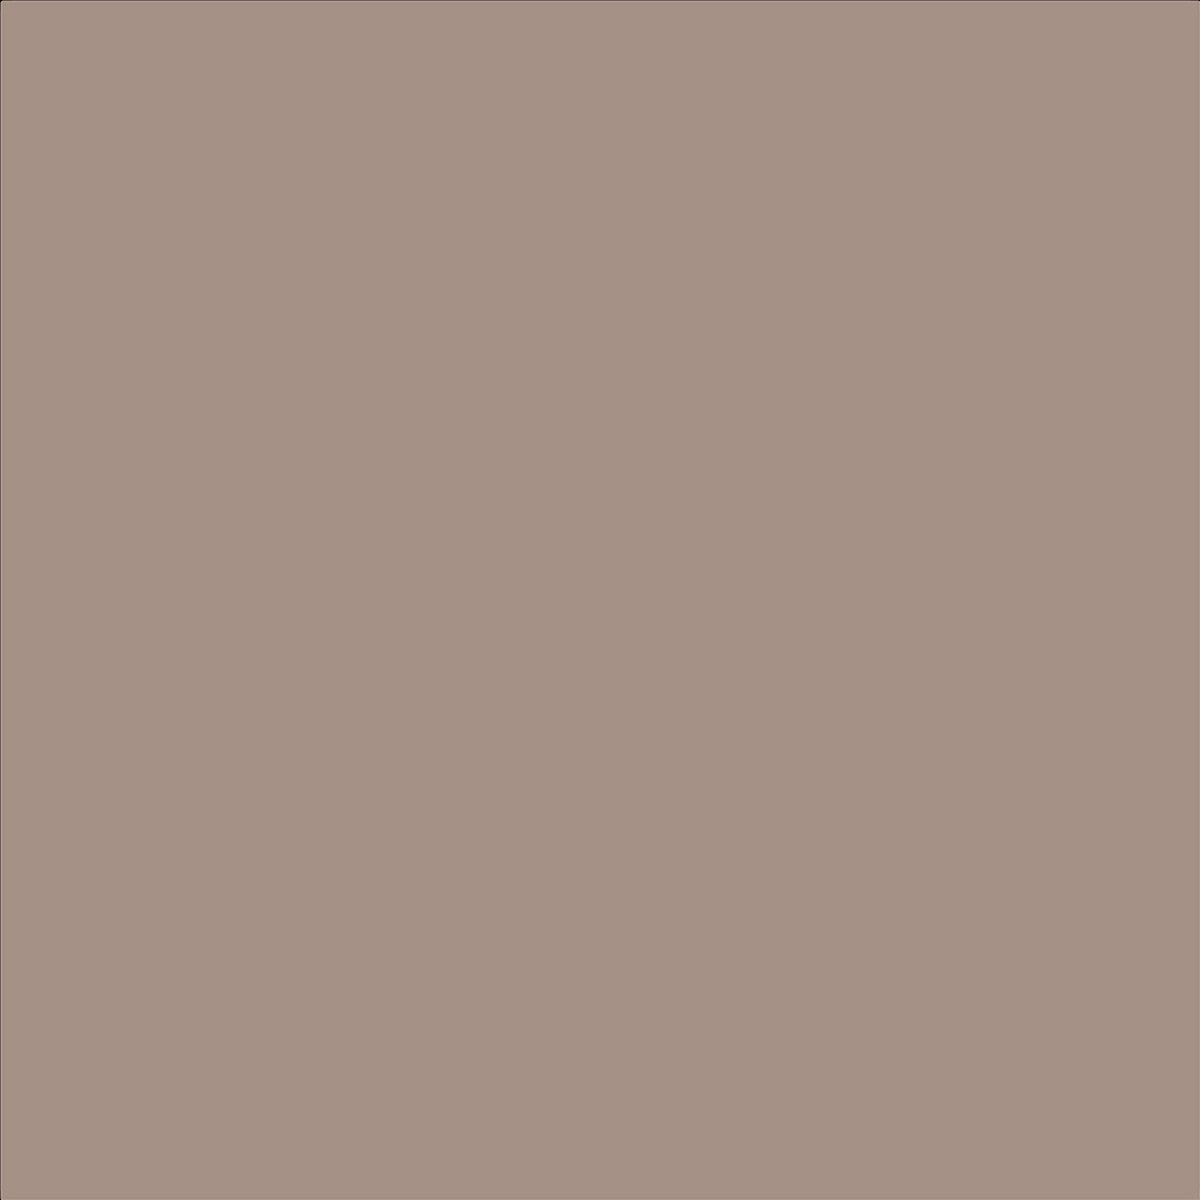 Mayco SS194 Medium Taupe Softee Acrylic Stain, 2 oz - Sounding Stone